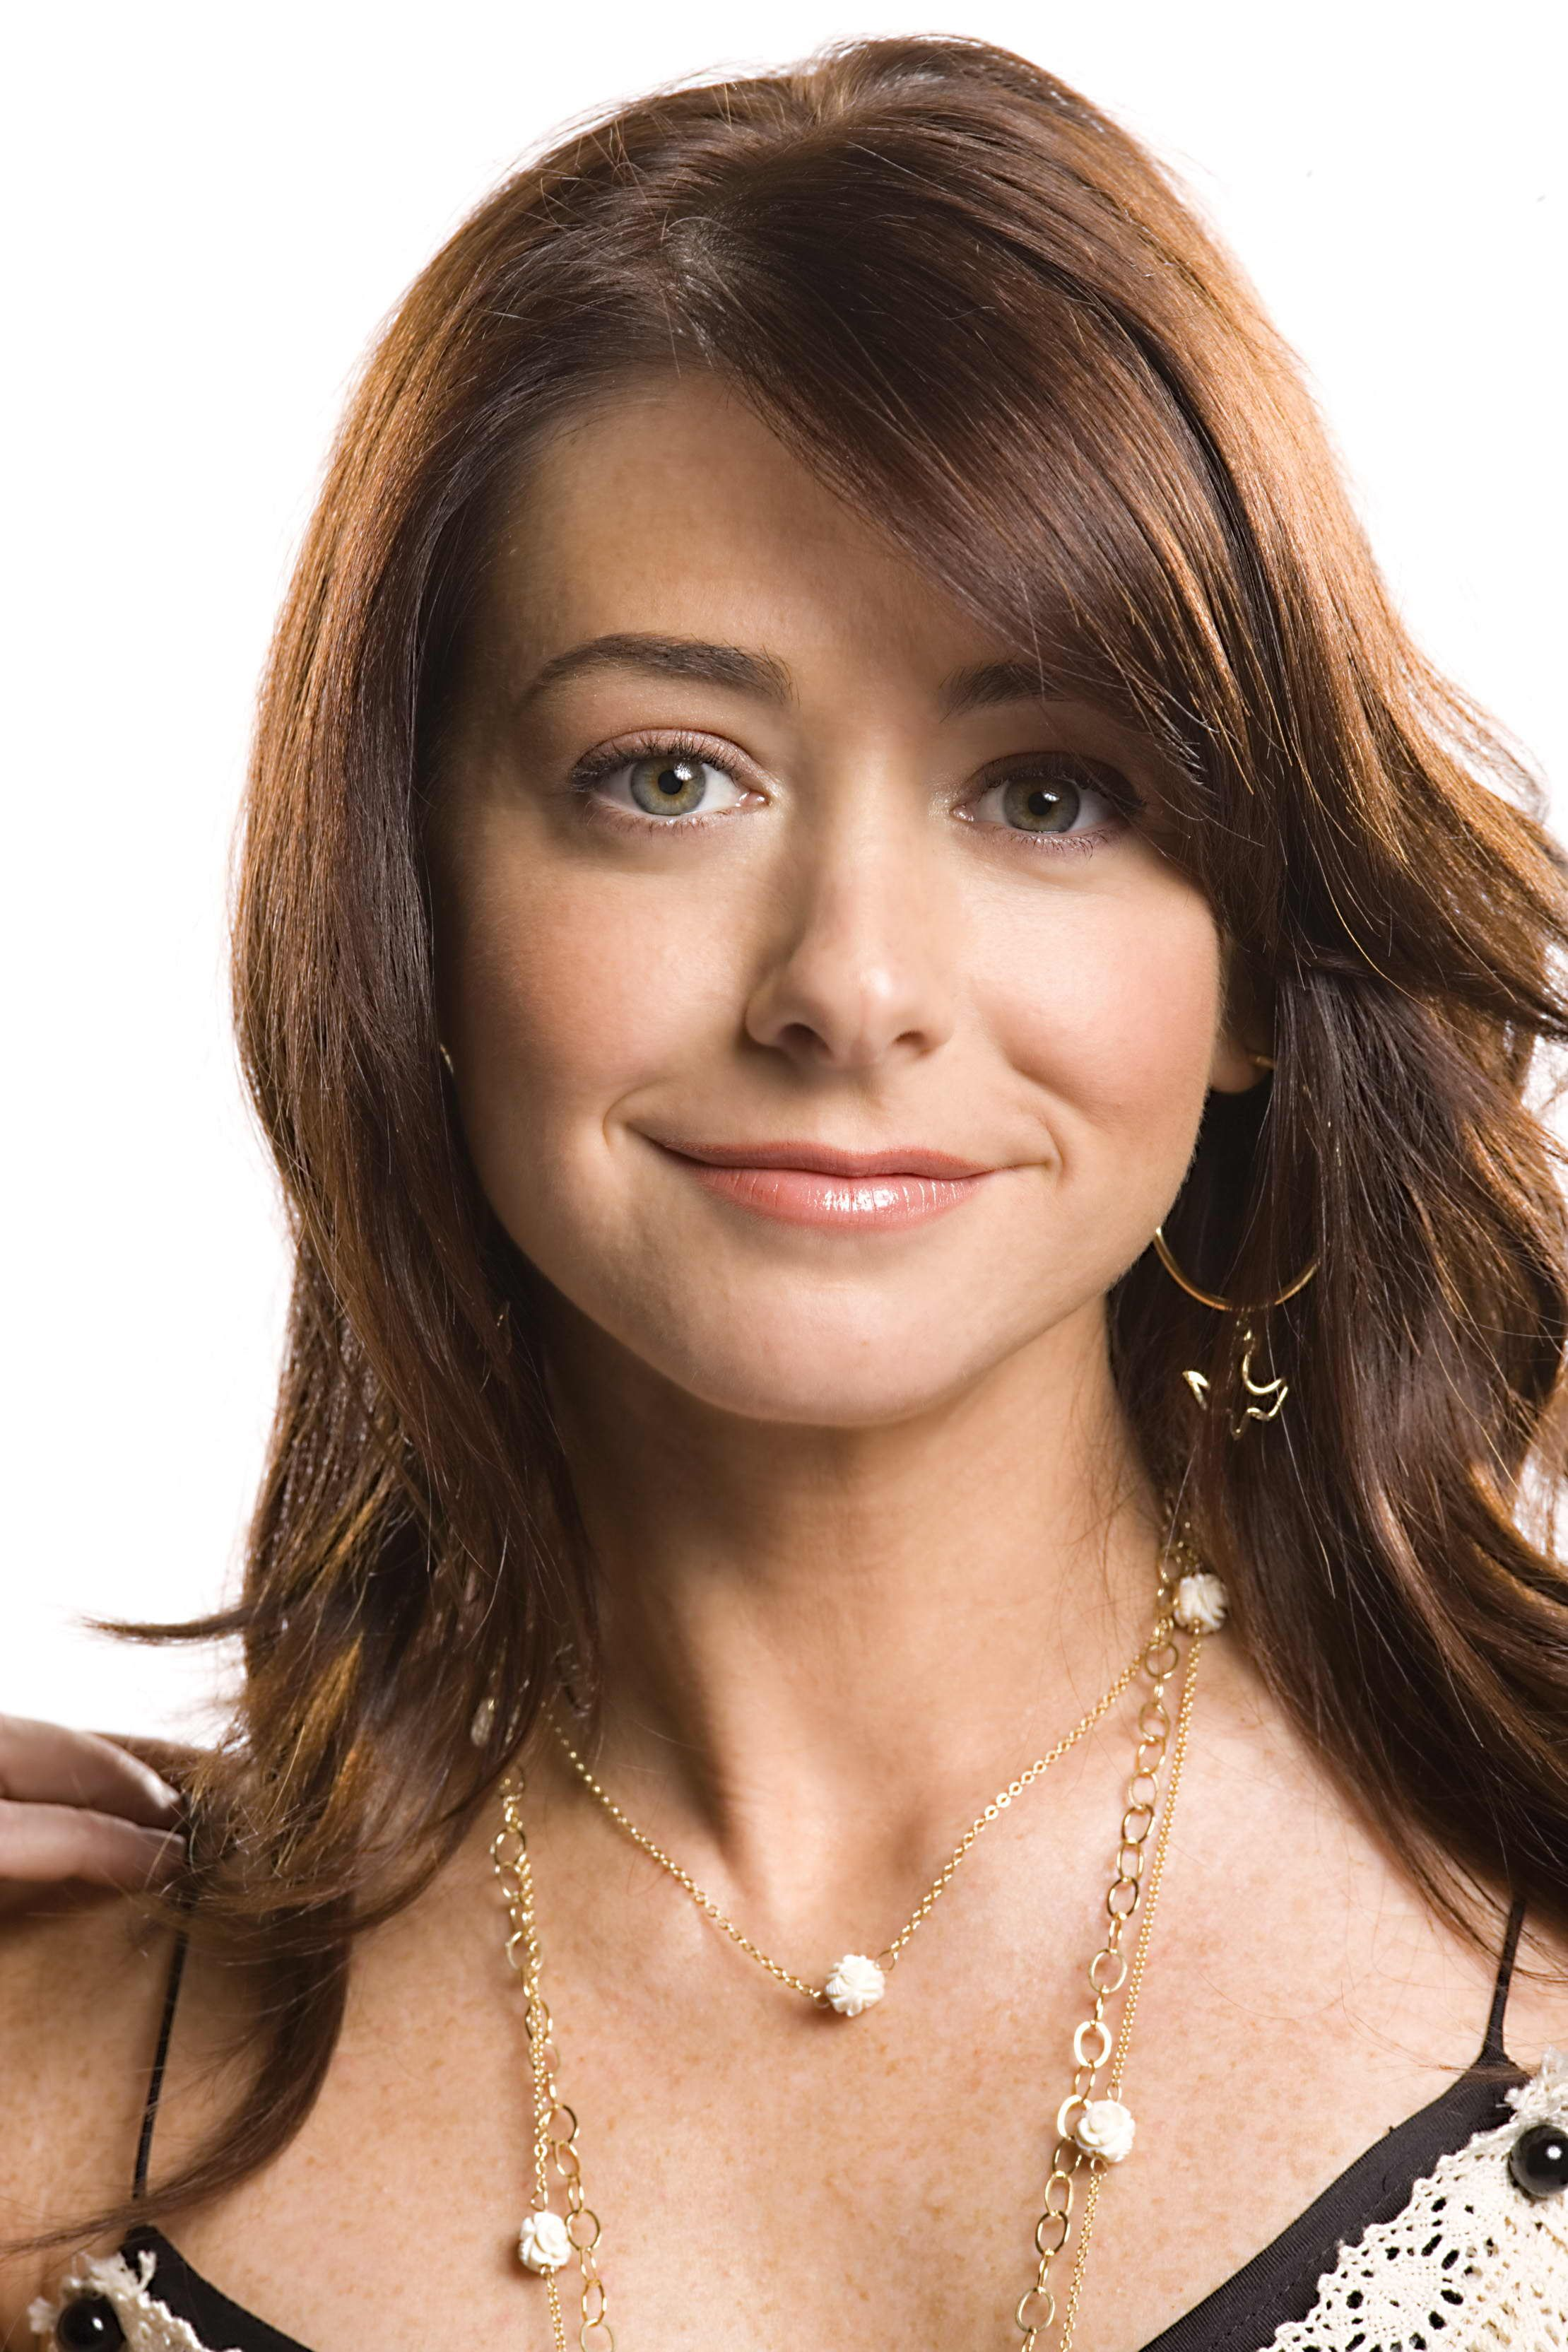 Alyson Hannigan Sex alyson hannigan - how i met your mother, buffy, american pie